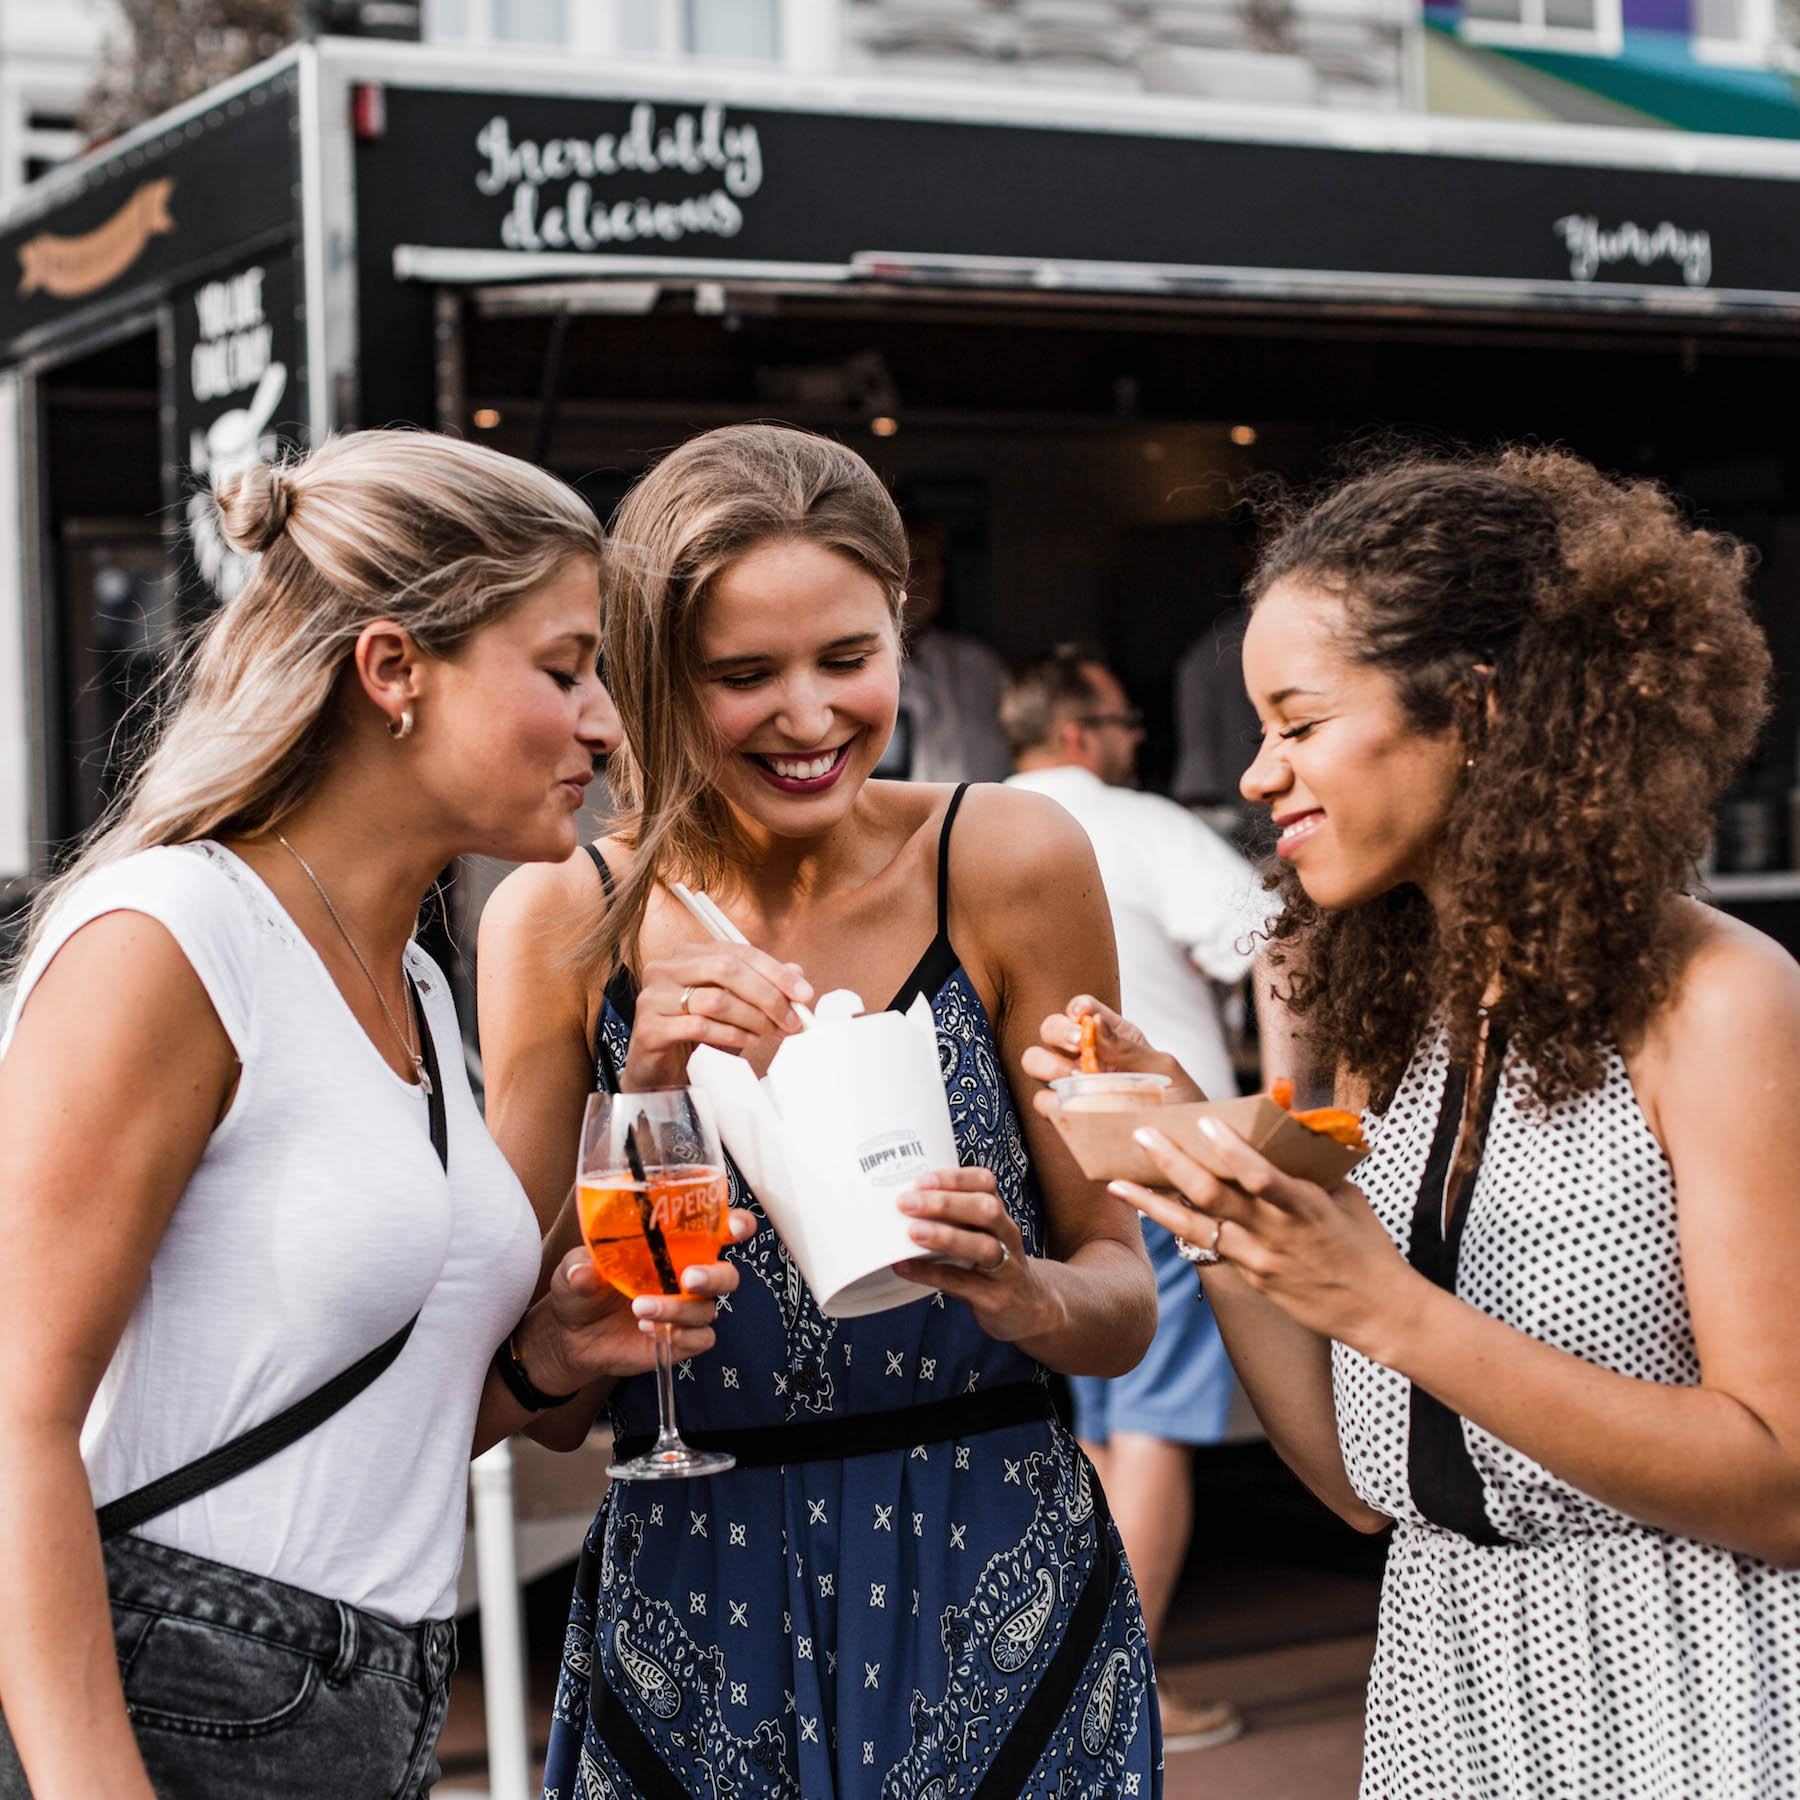 Food Truck Festival in Hamburg Suelovesnyc_Food_truck_festival_hamburg_paypal_app_foodtruck_hamburg_food_truck_session_spielbudenplatz